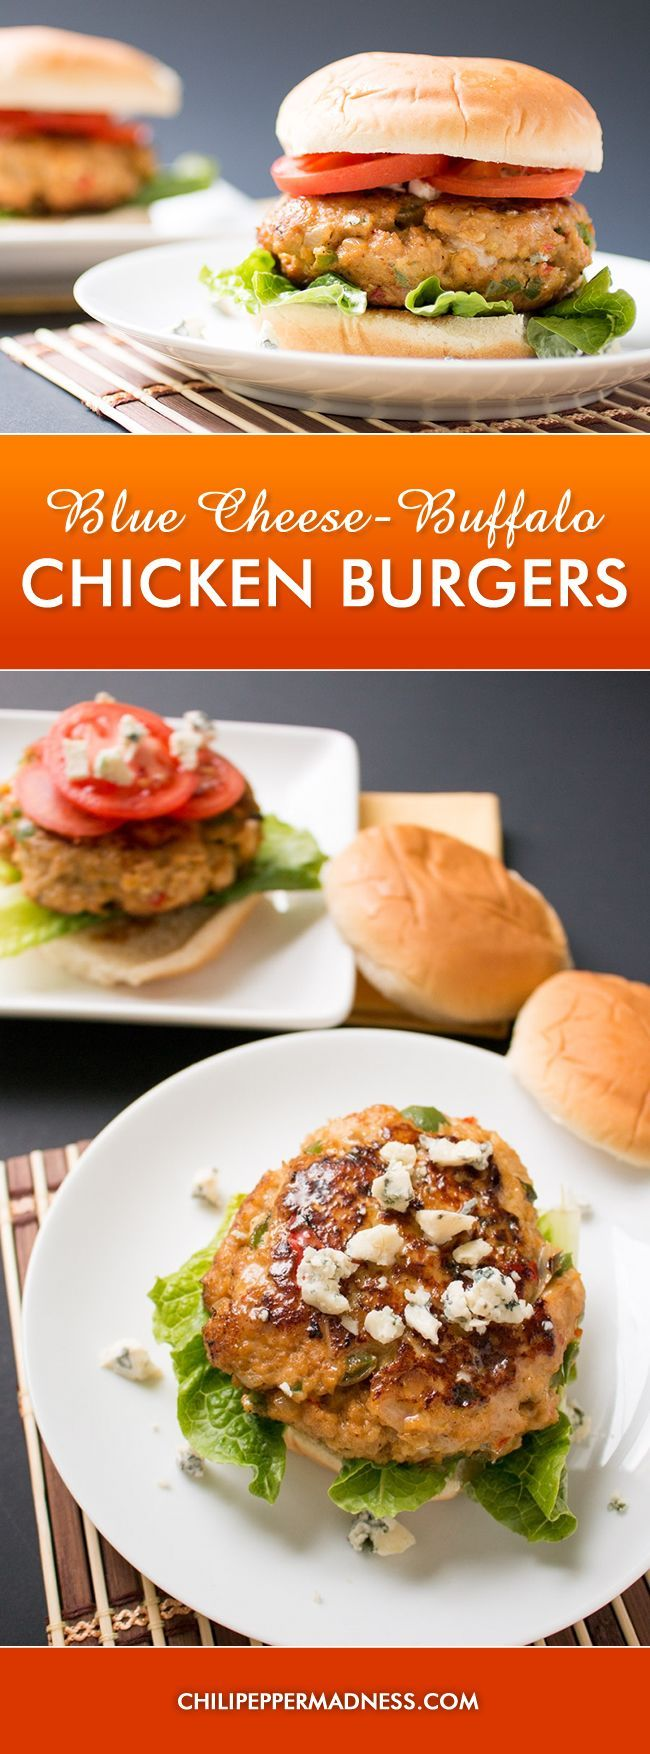 Blue Cheese-Buffalo Chicken Burgers - These chicken burgers are made with tangy Buffalo sauce and they're overflowing with blue cheese that's been stuffed into the center. They're juicy and tender and yes, you will want more.